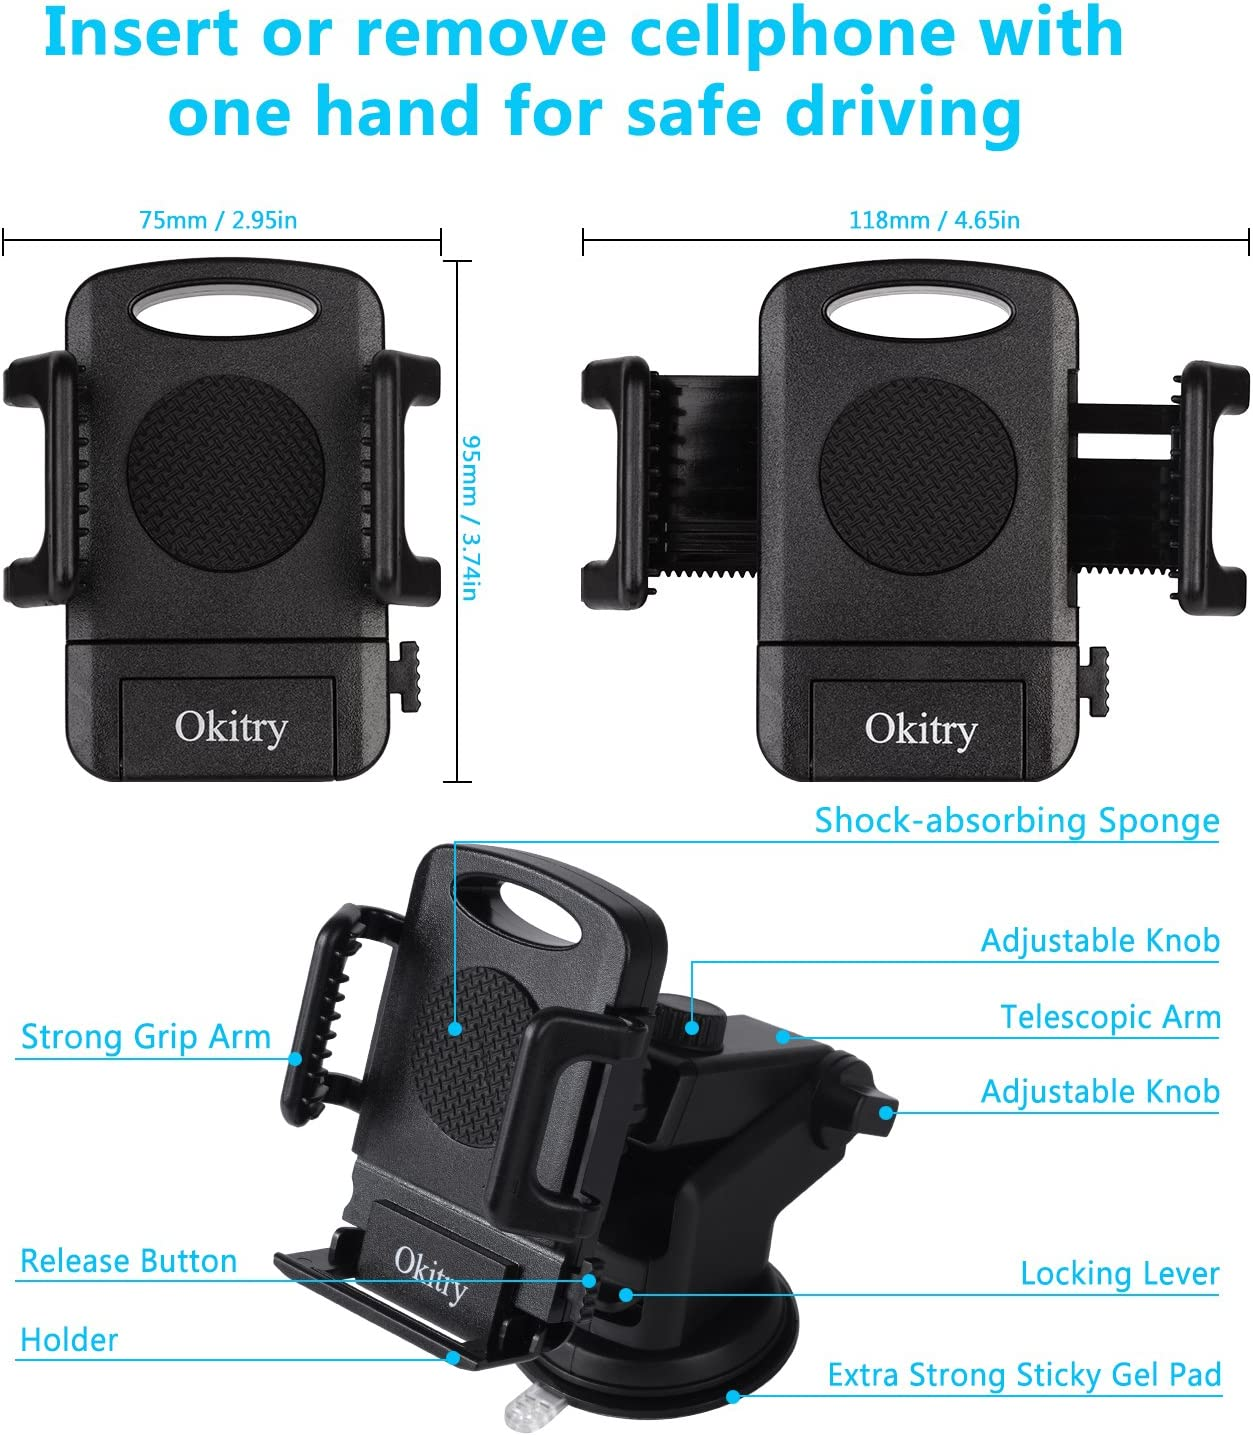 Widras New 2020 Design Dashboard Windshield Car Phone Mount Washable Strong Sticky Gel Pad w// One-Touch Design Holder for iPhone 11 Pro Max XS X 8 7 Plus Samsung Galaxy S7 S8 S9 S10 Edge Universal